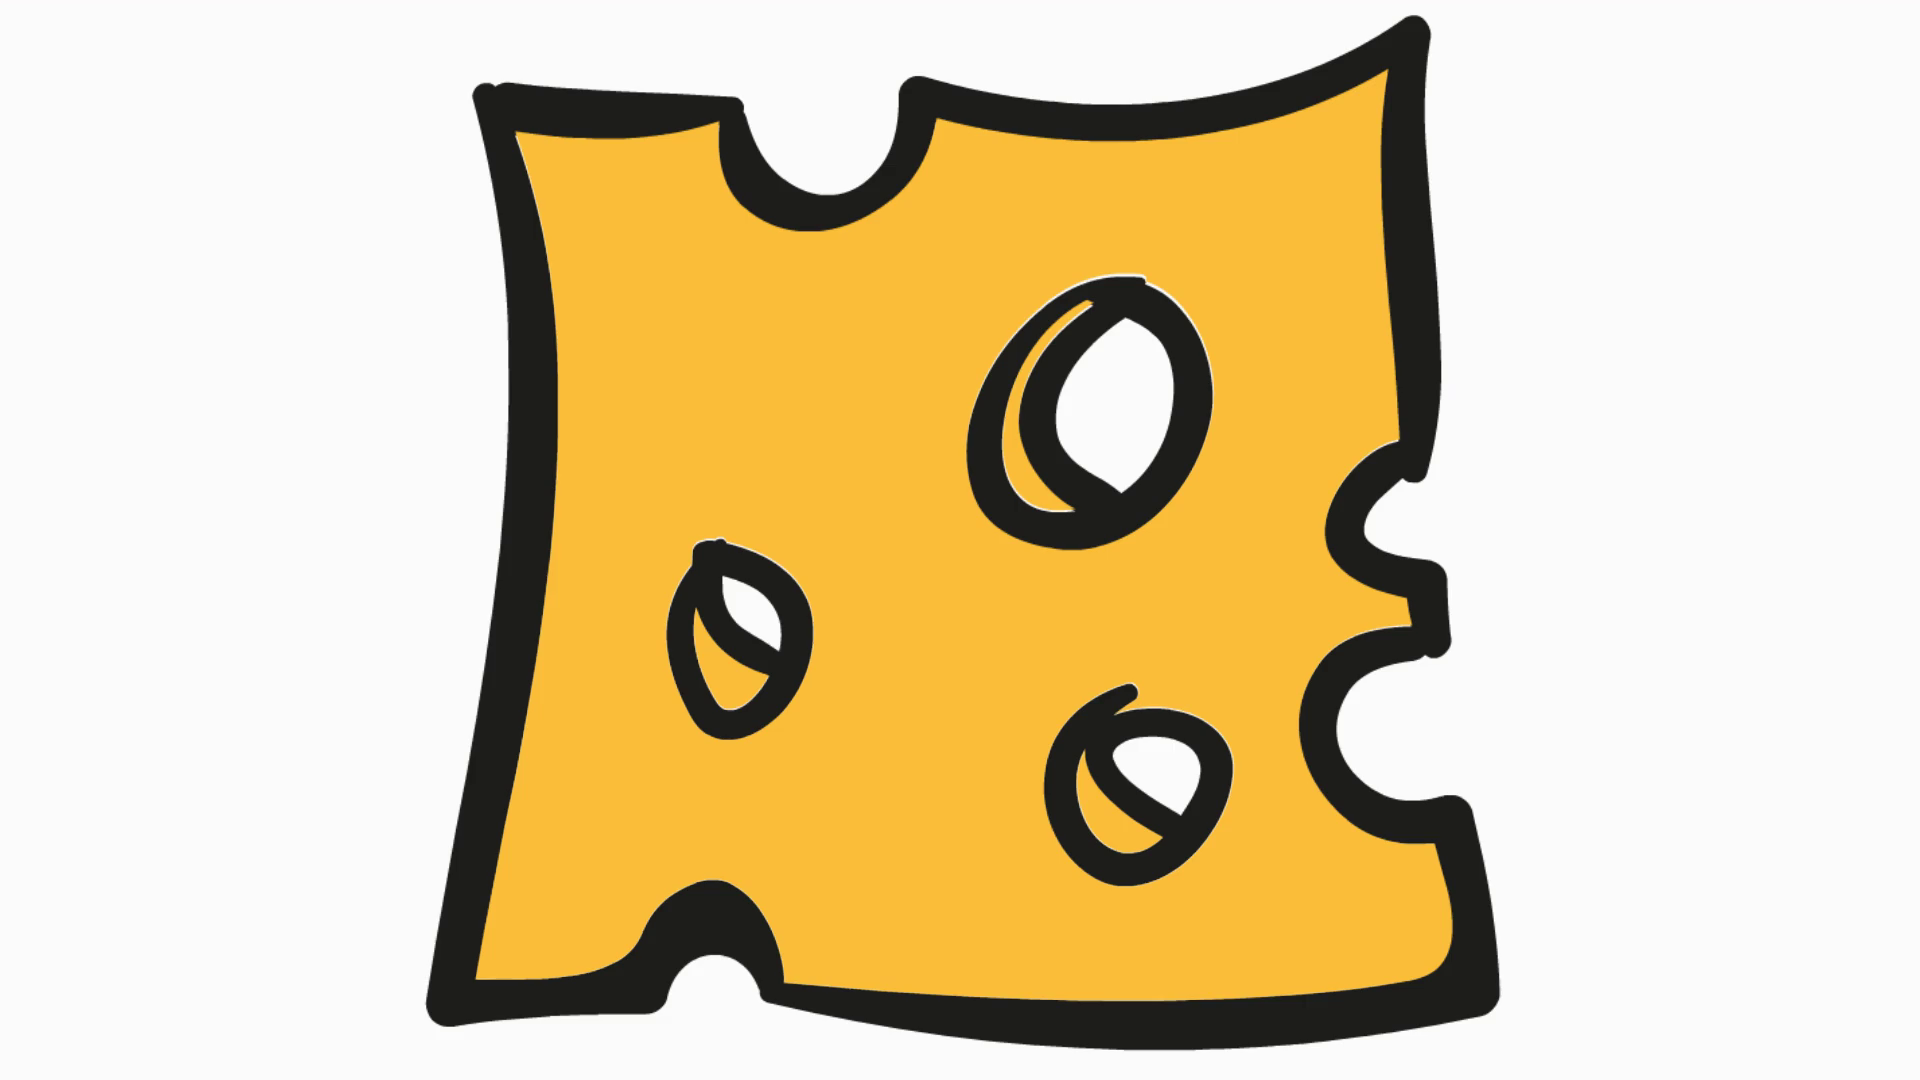 Cheese clipart animated, Cheese animated Transparent FREE ... (1920 x 1080 Pixel)